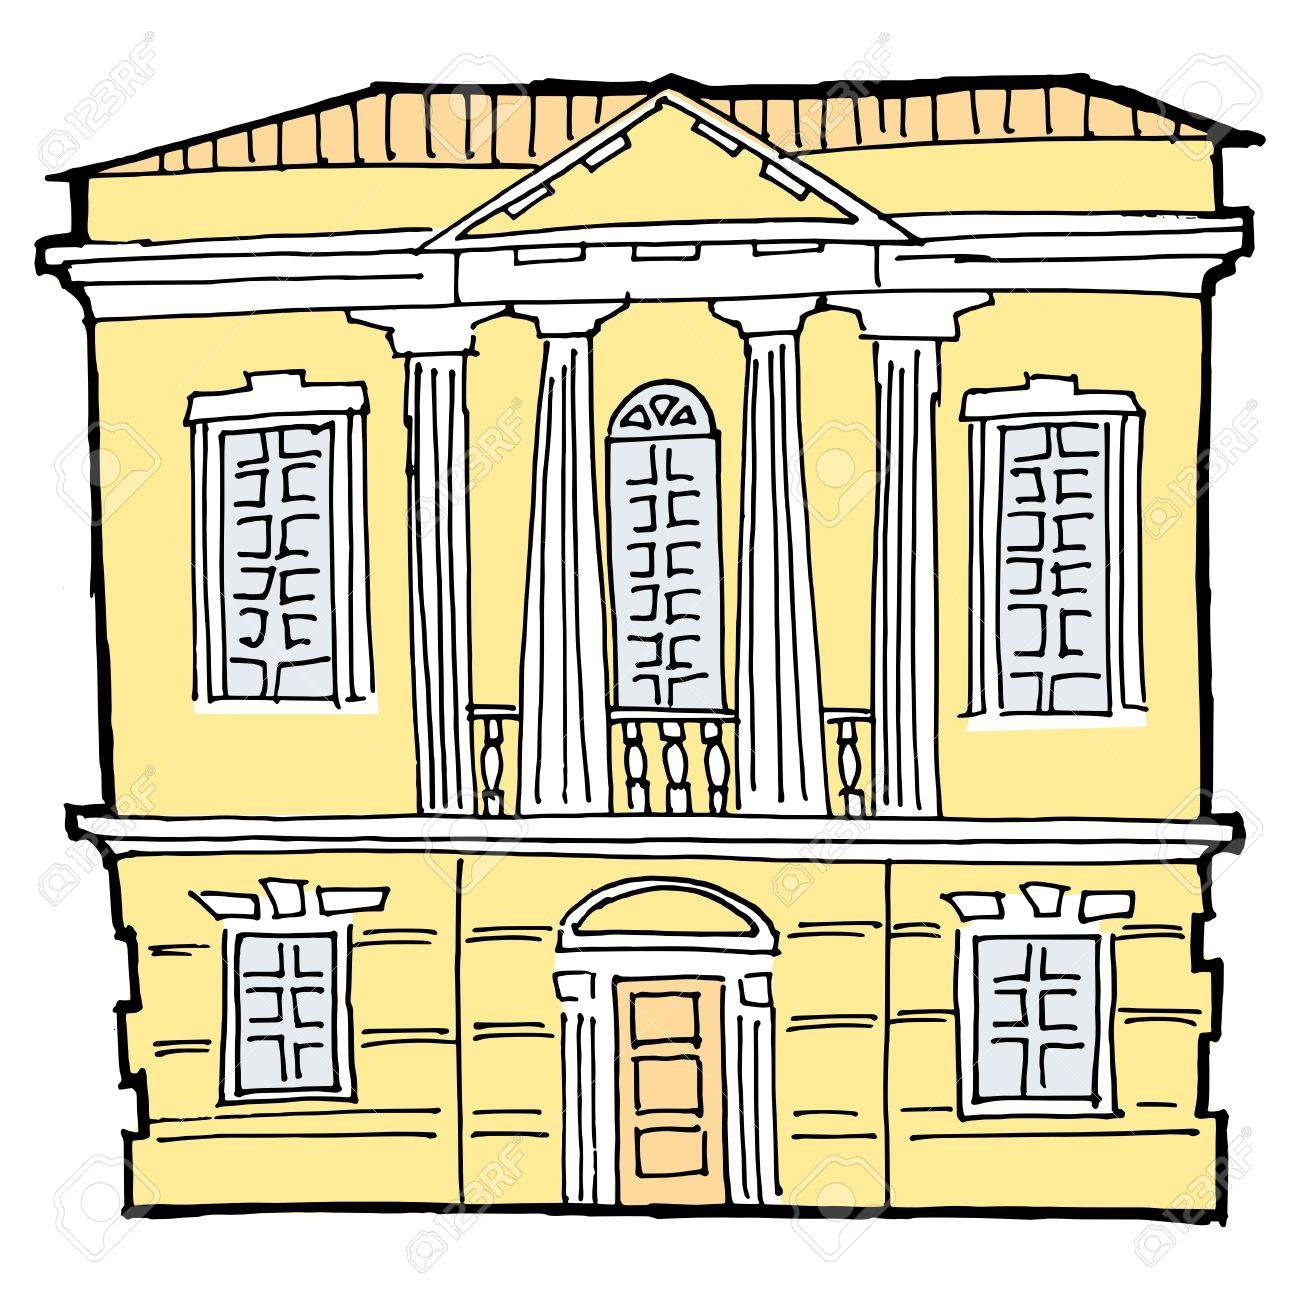 hand drawn, vector, sketch image of house in classical style Stock Vector - 17388811